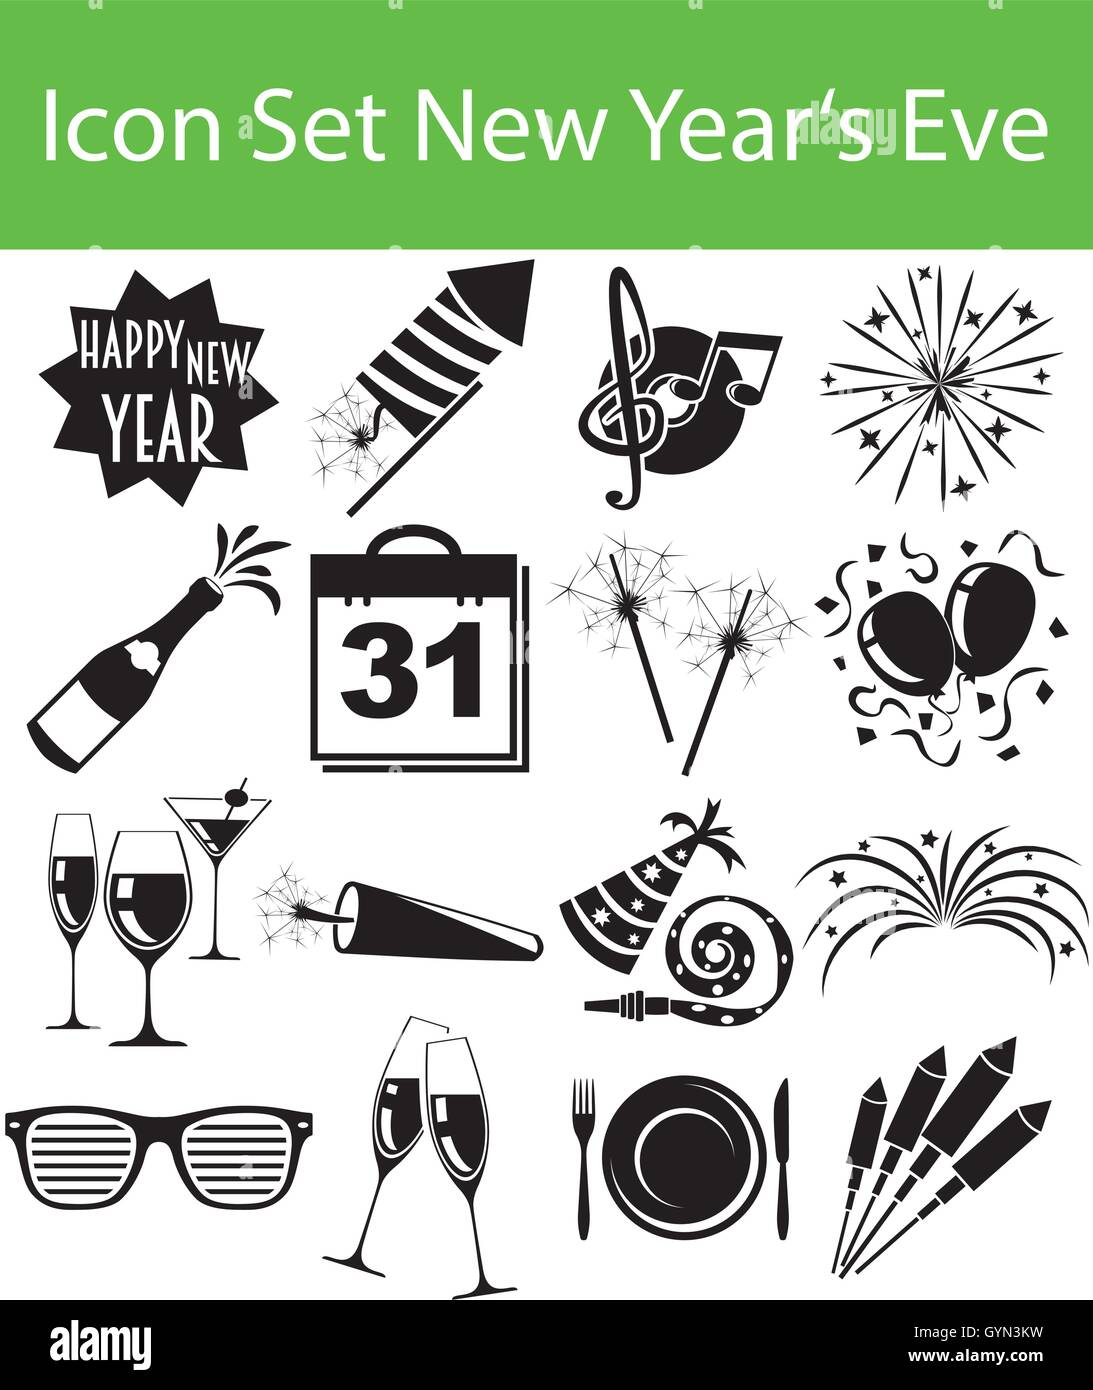 icon set new year s eve with 16 icons for the creative use in graphic stock vector image art alamy icon set new year s eve with 16 icons for the creative use in graphic stock vector image art alamy